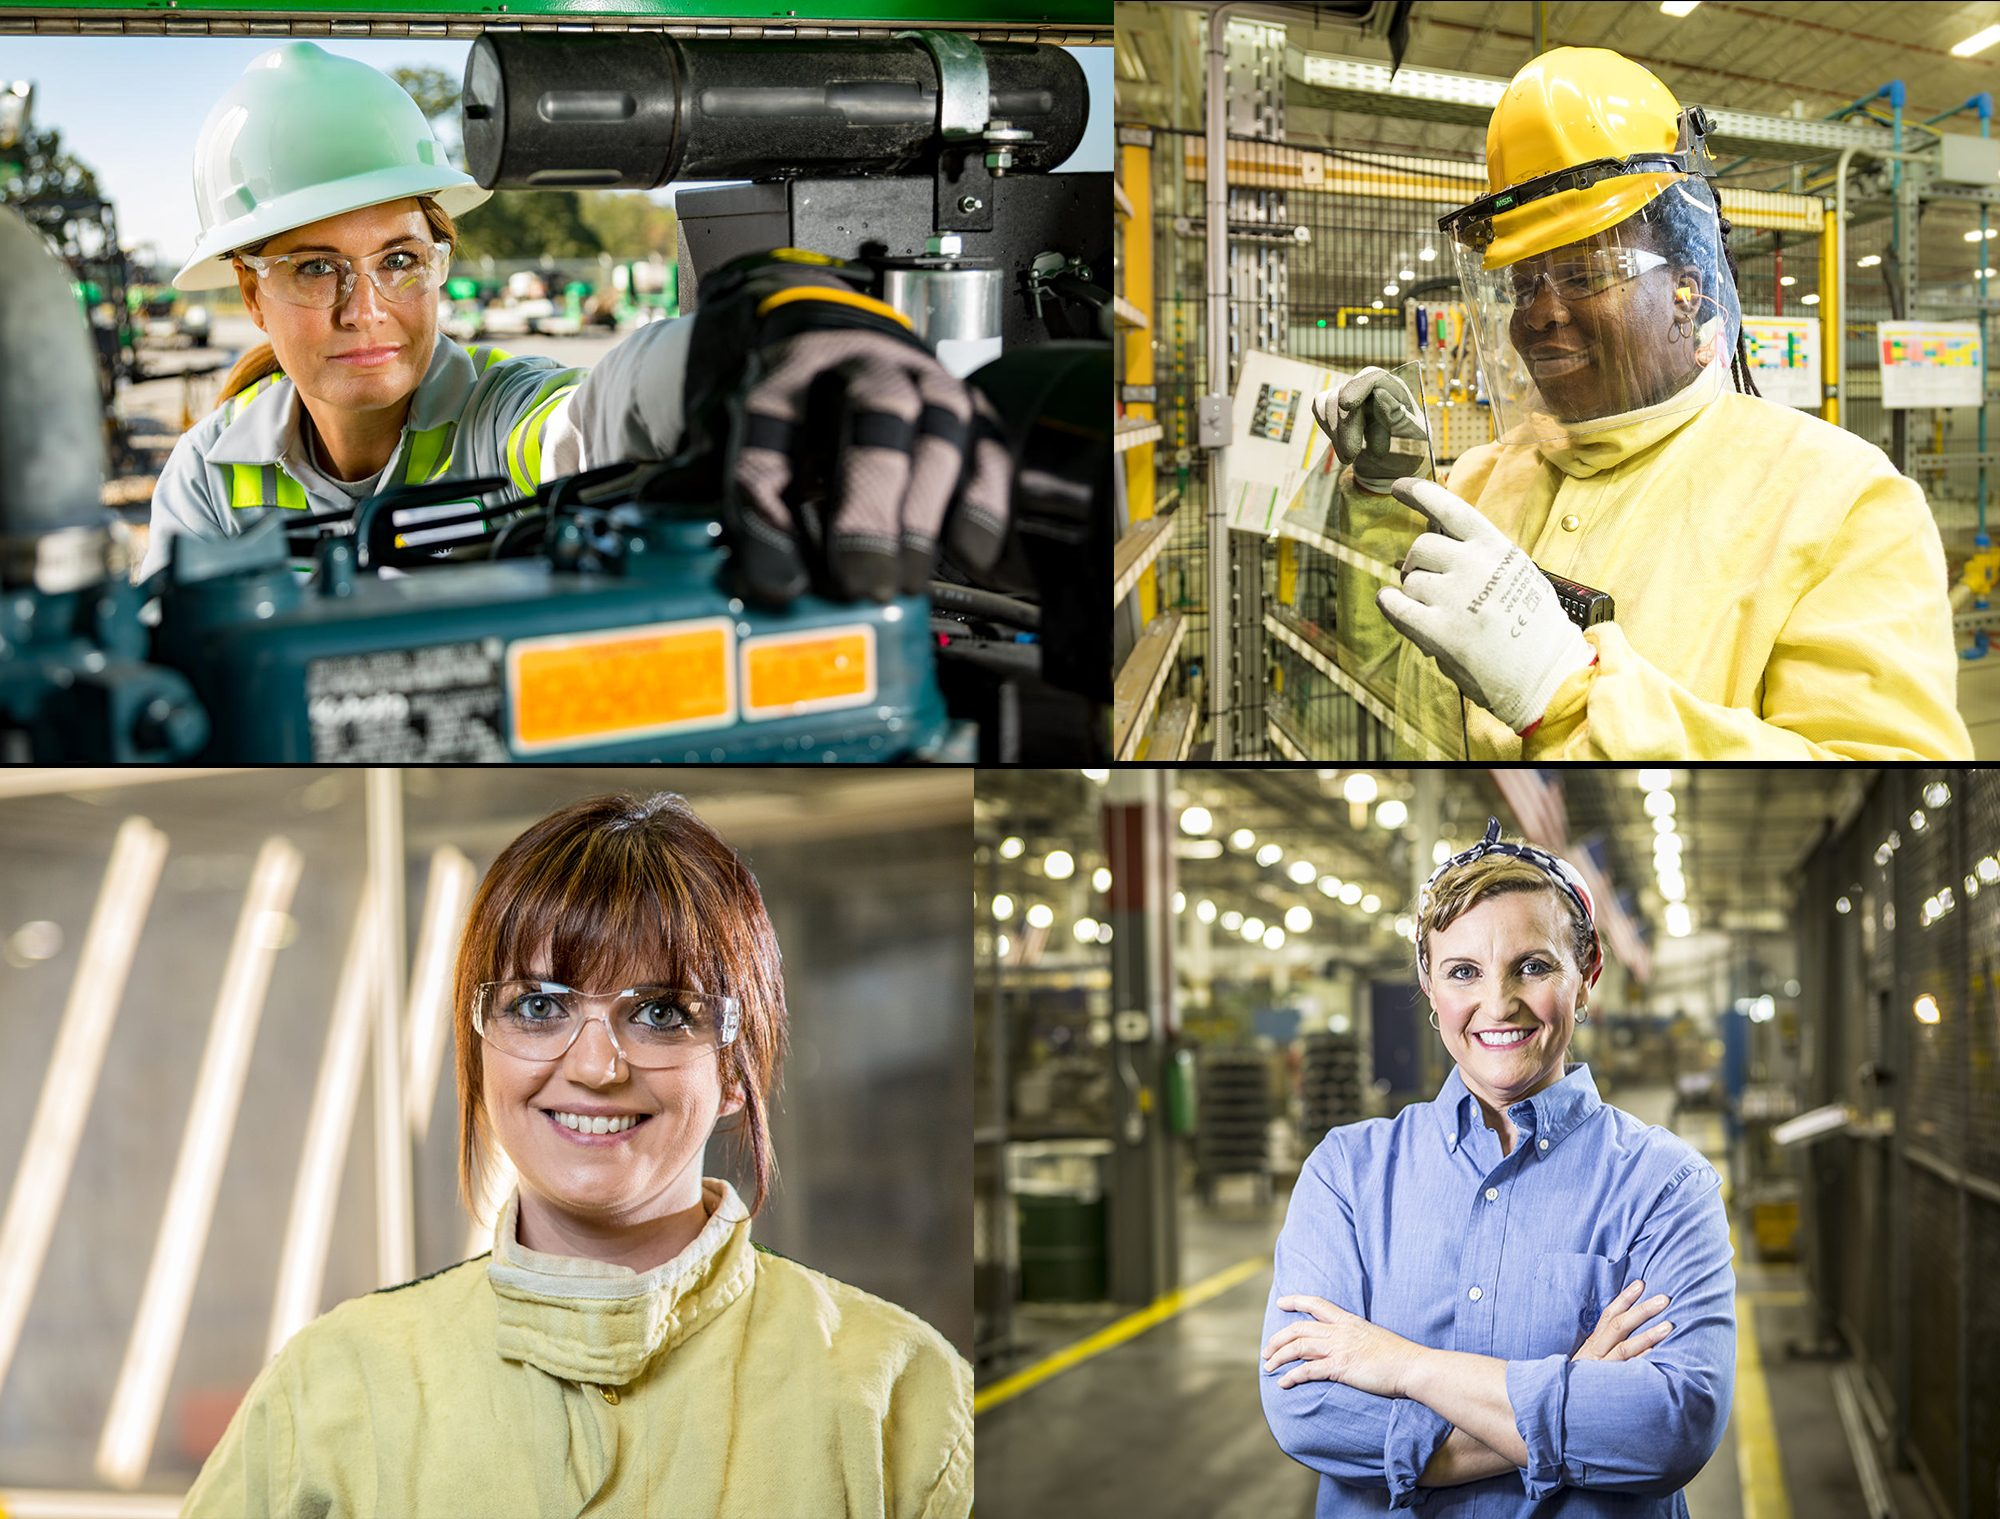 women-industrial-manufacturing-lobiondophotography